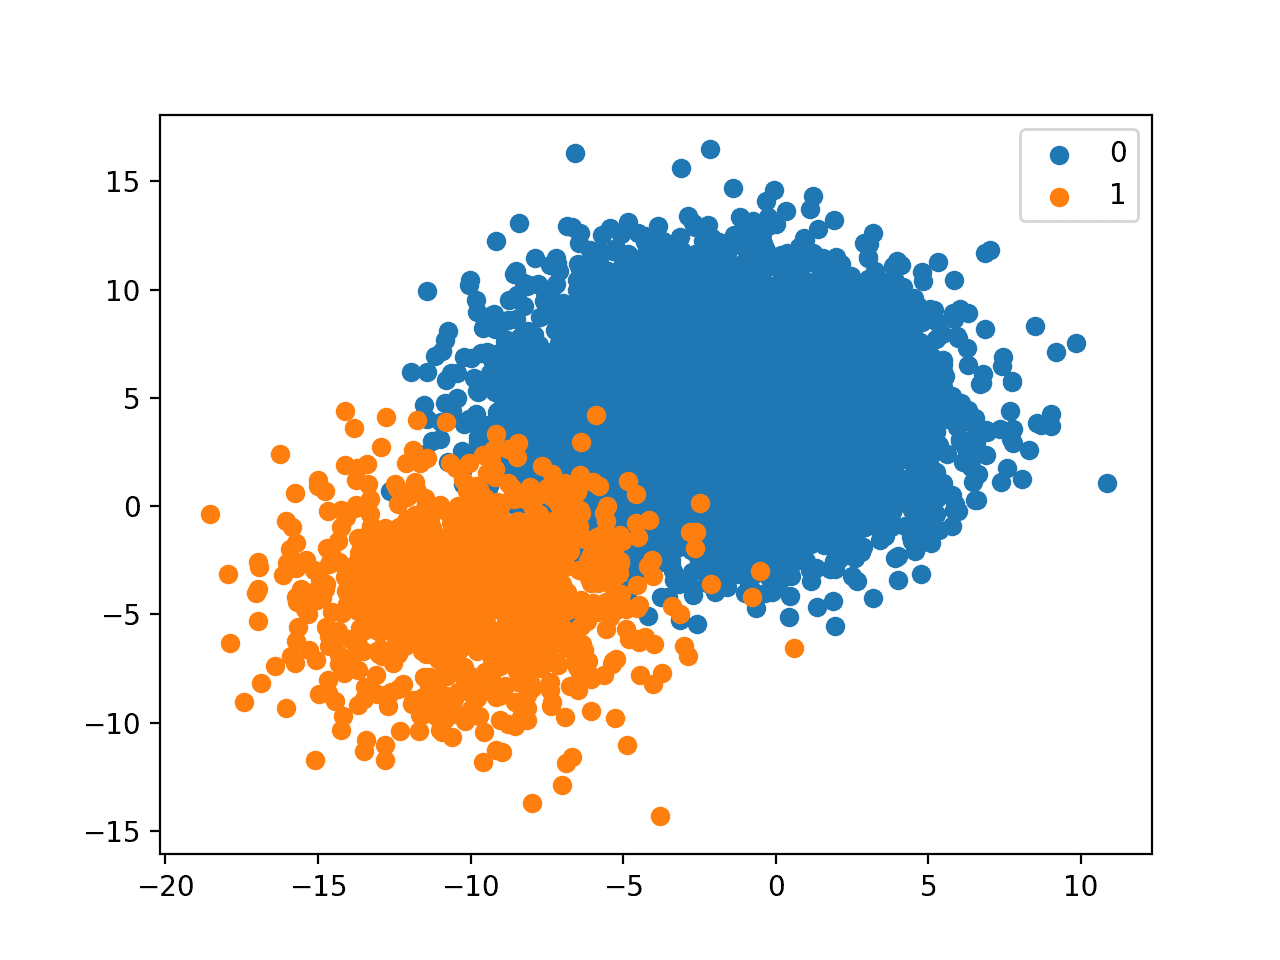 Scatter Plot of Binary Classification Dataset With A 1 to 10 Class Distribution